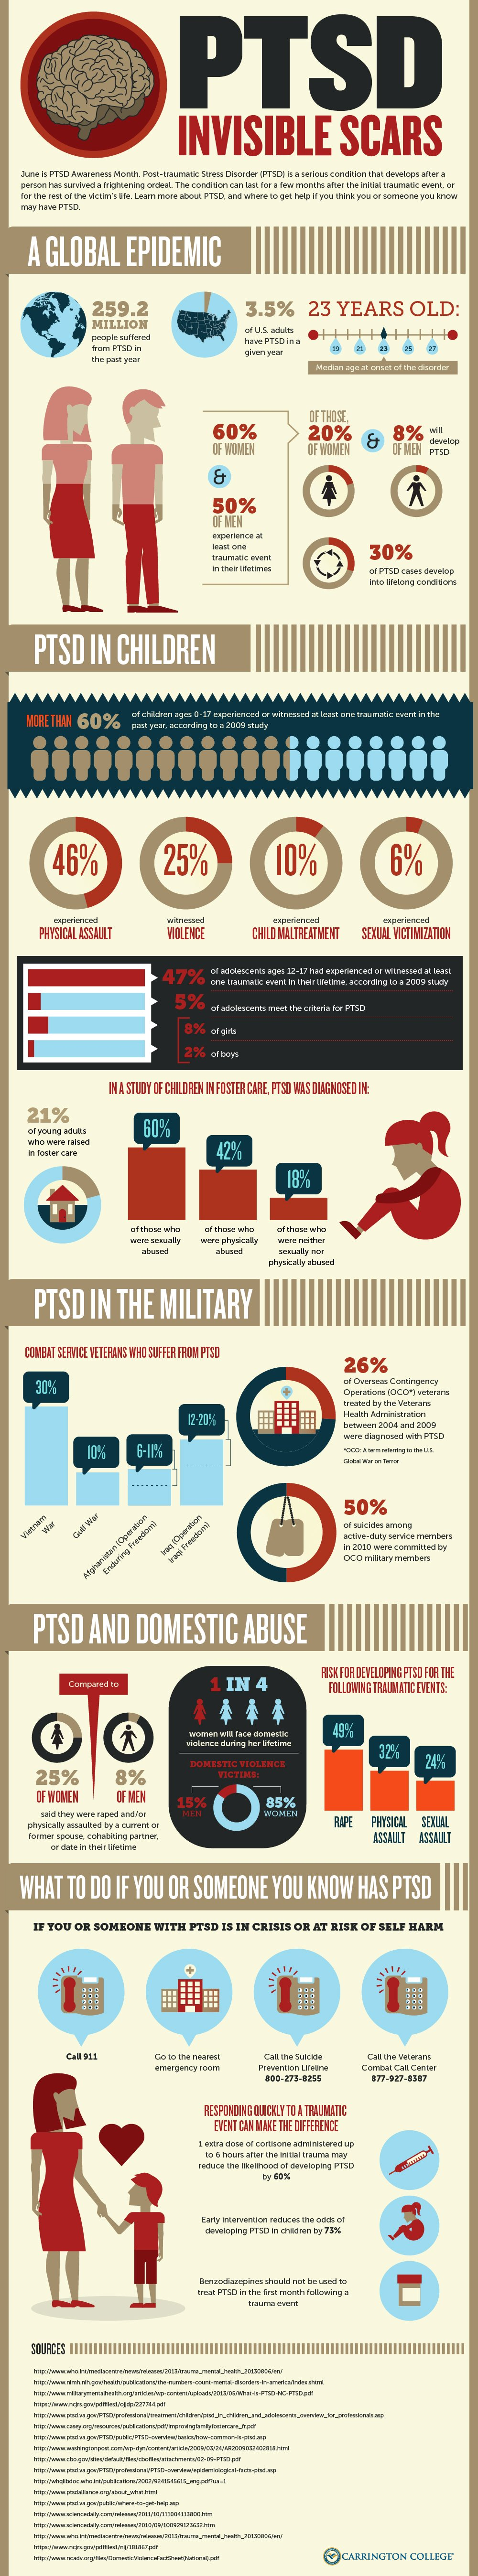 All You Need To Know About PTSD - Infographic